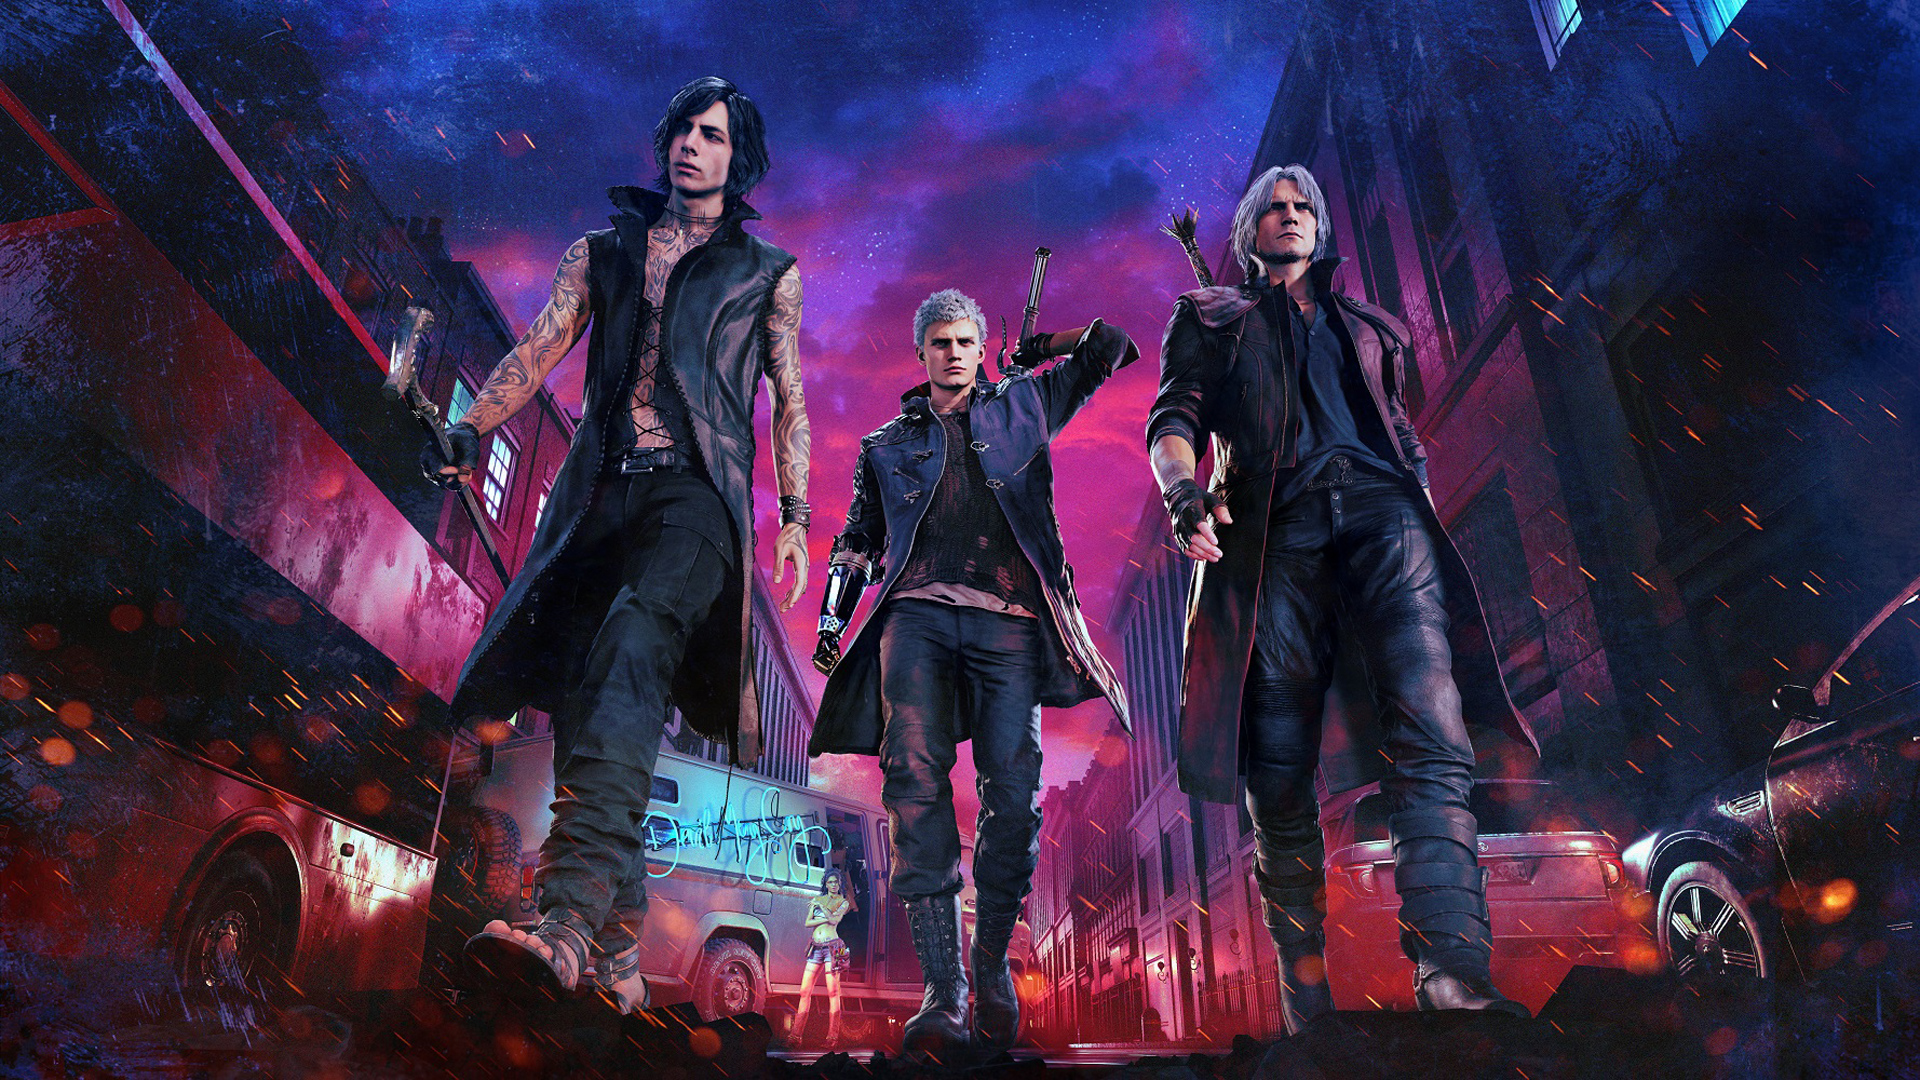 2019 Devil May Cry 5 1080P, HD Games, 4k Wallpapers